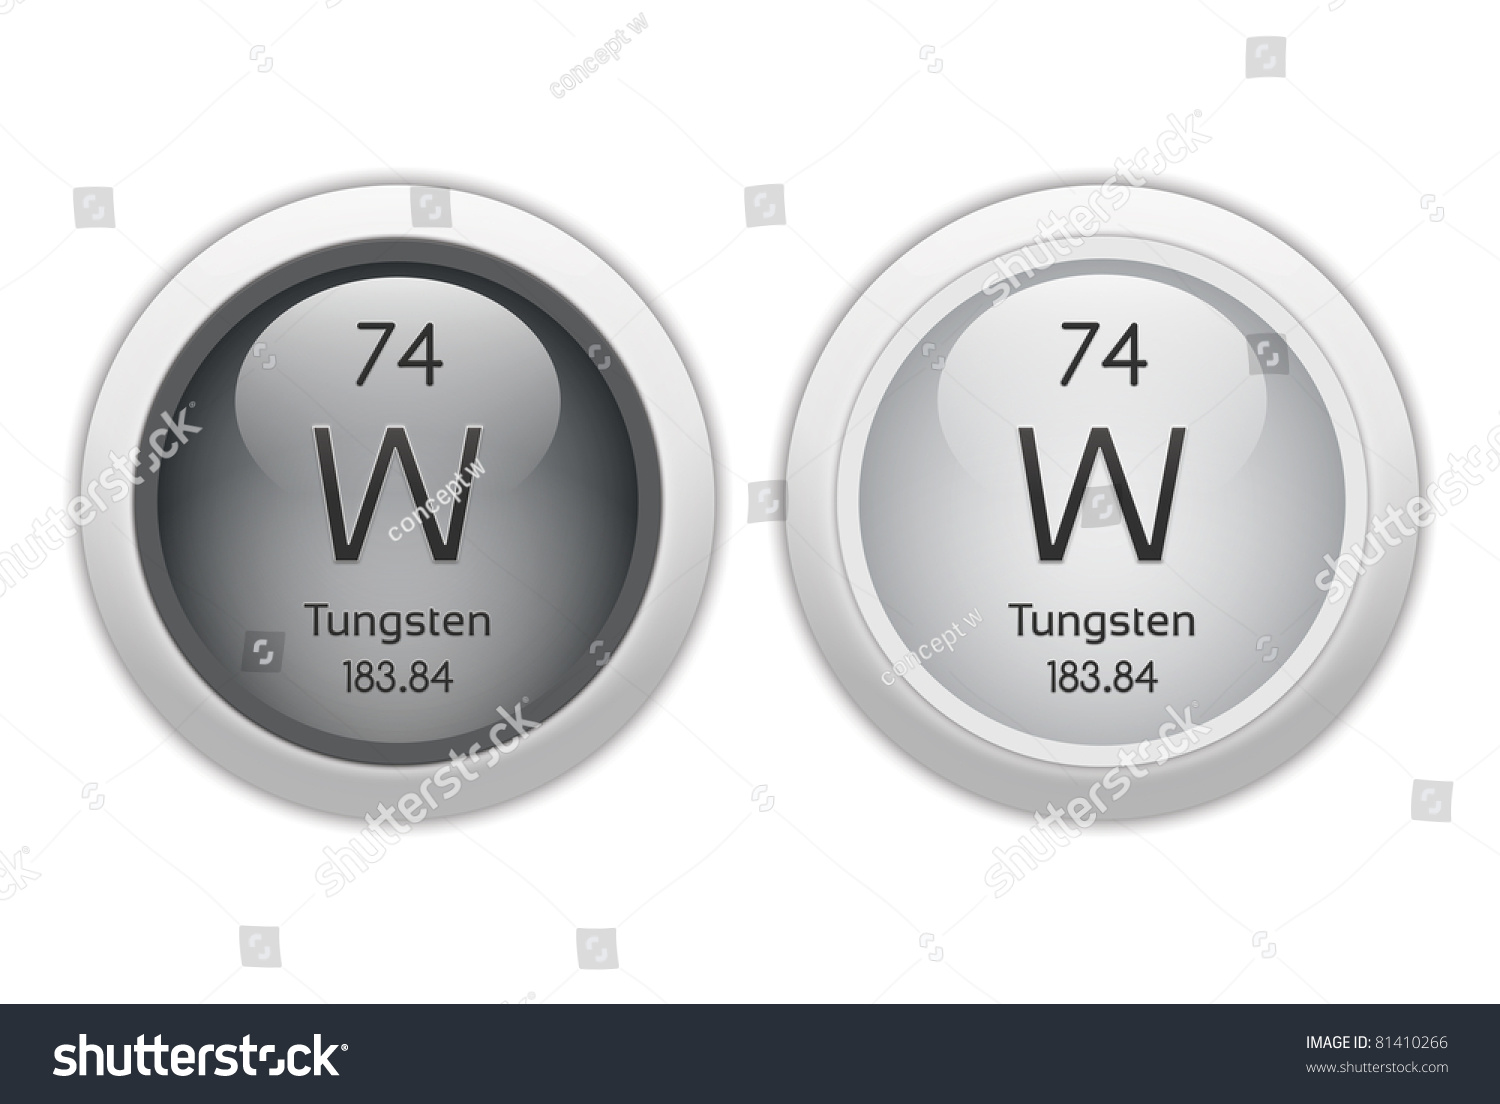 Tungsten Wolfram Two Web Buttons Chemical Stock Illustration